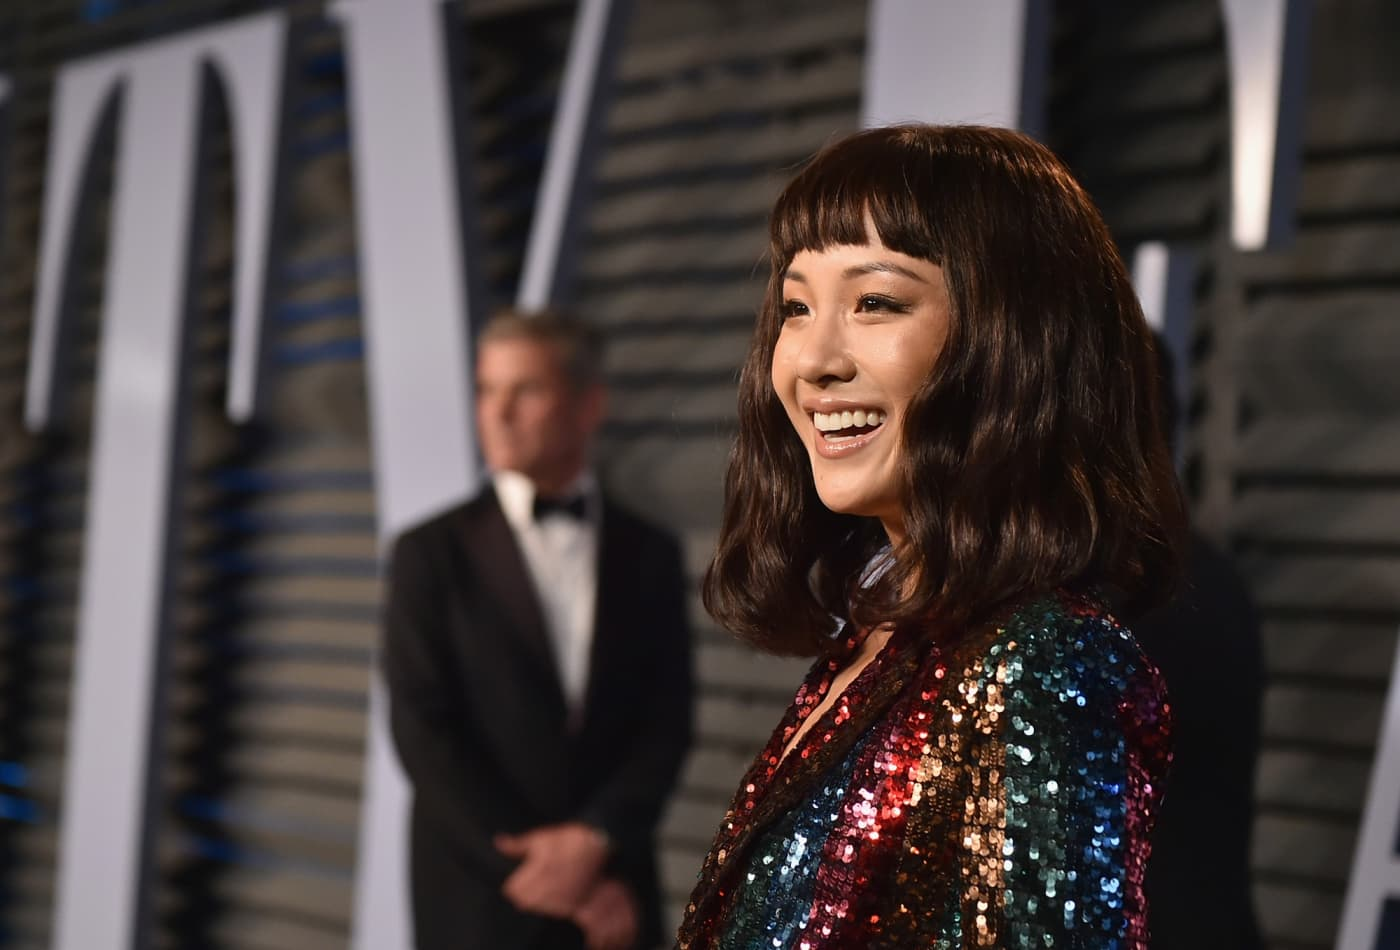 Crazy Rich Asians' star Constance Wu was once in deep debt